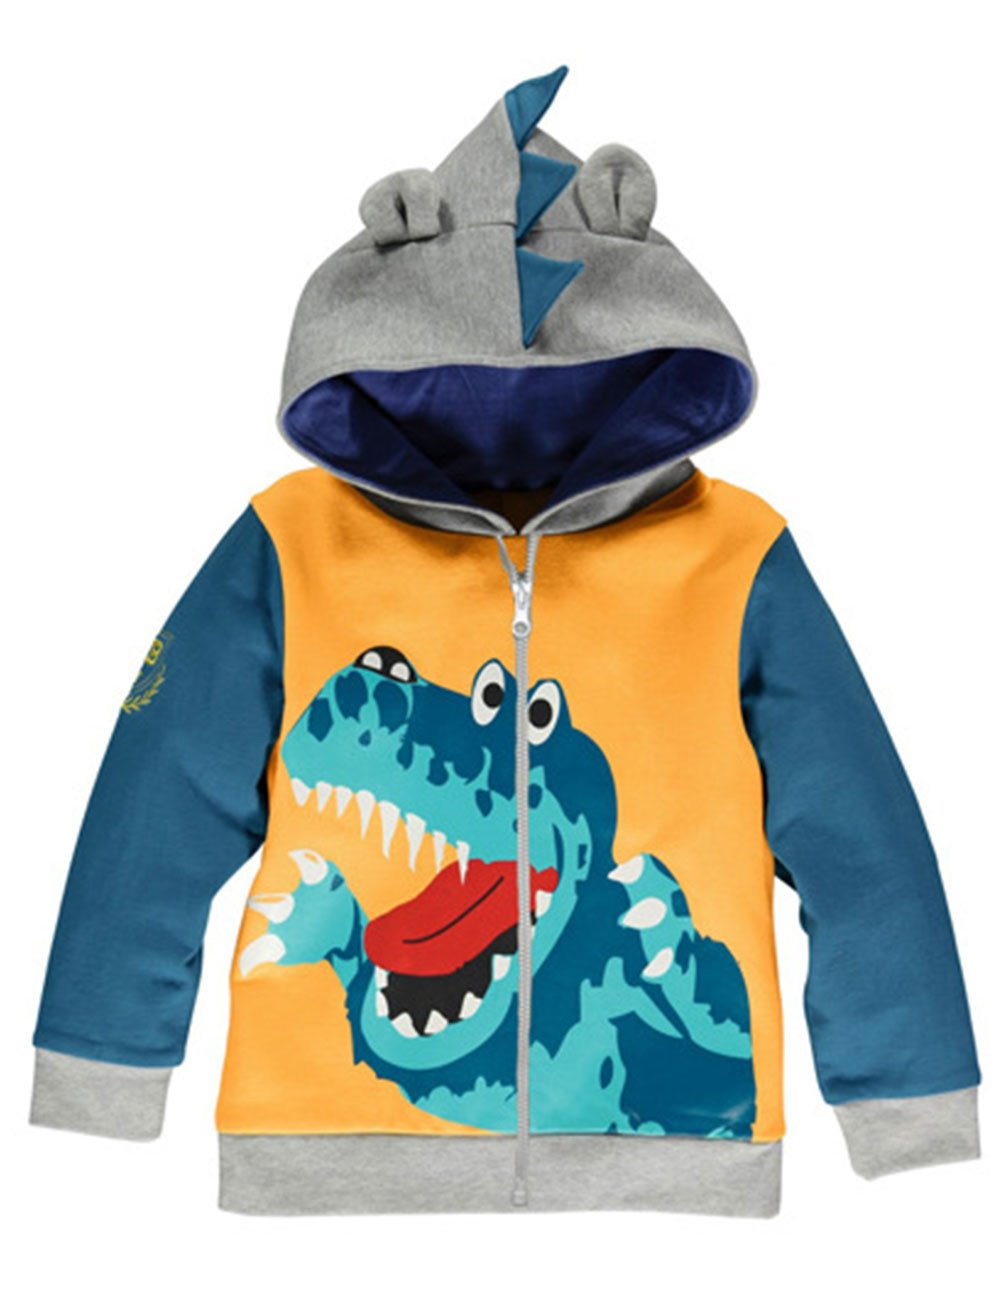 LitBud Boys Hoodies for Kids Toddler Cartoon Dinosaur Zipper Packaway Autumn Coat Size 4-5 Years 5T